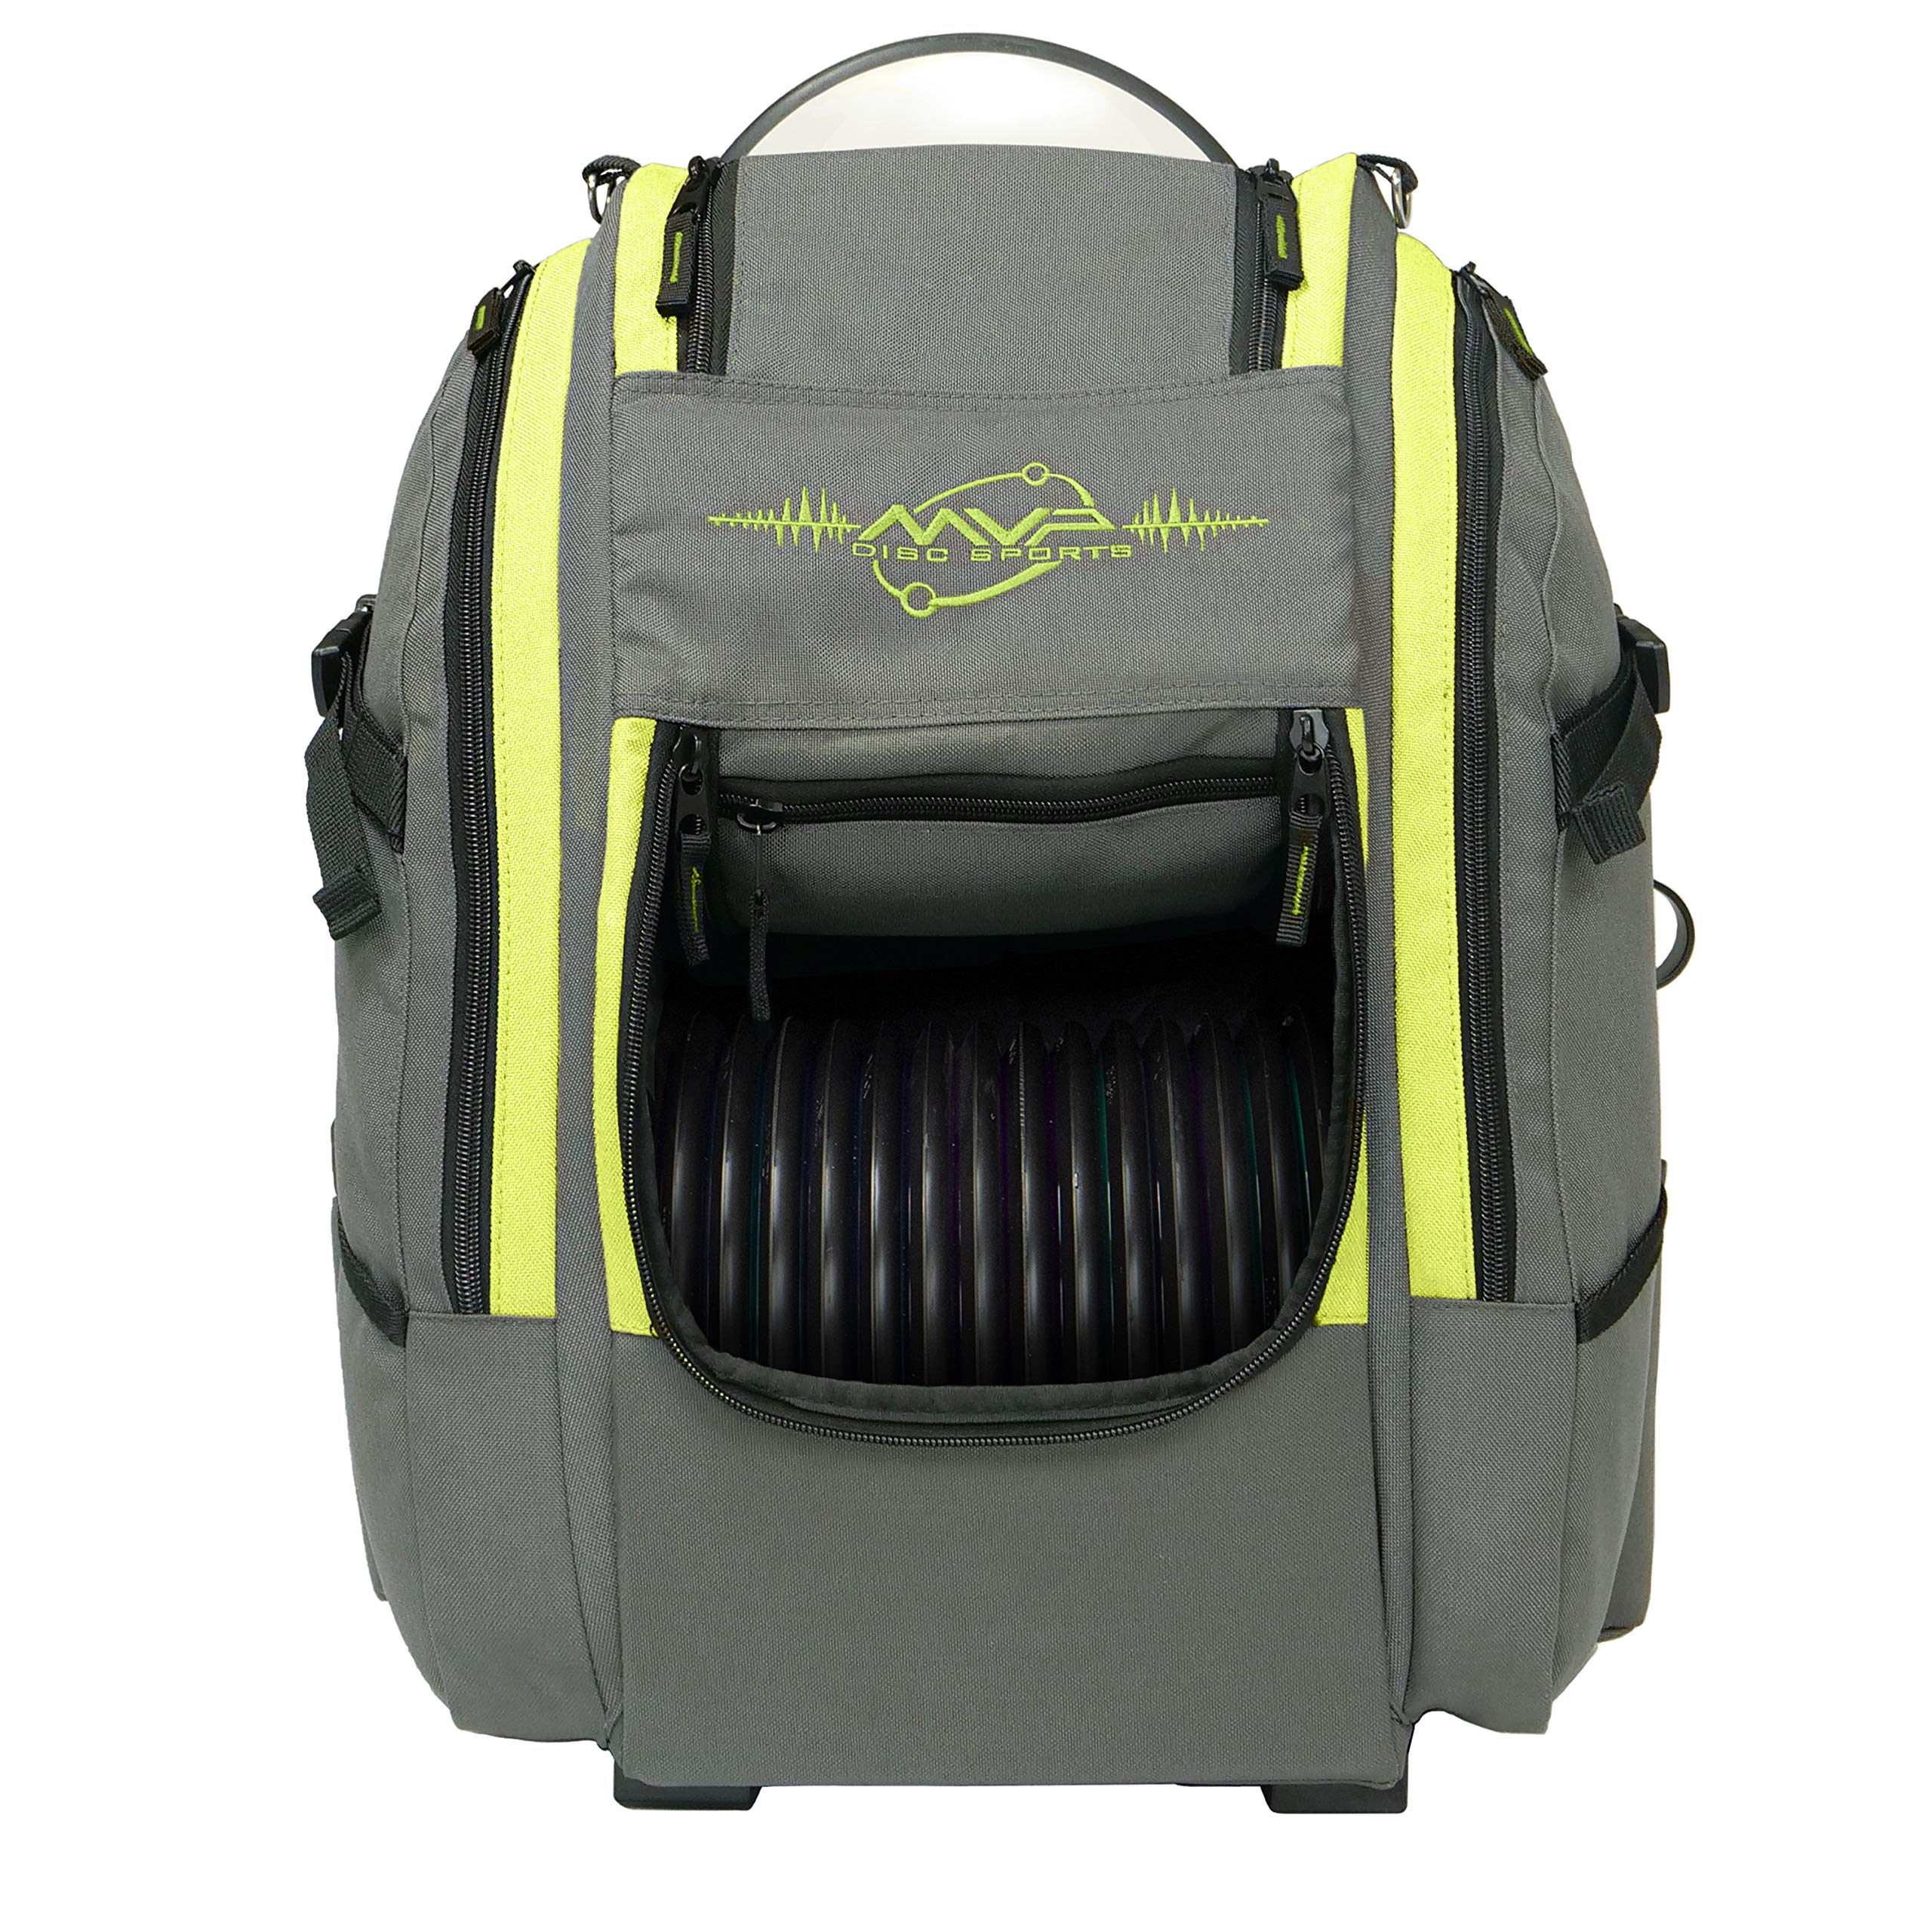 MVP Disc Sports Voyager Slim Bag (Gray/Lime) by MVP Disc Sports